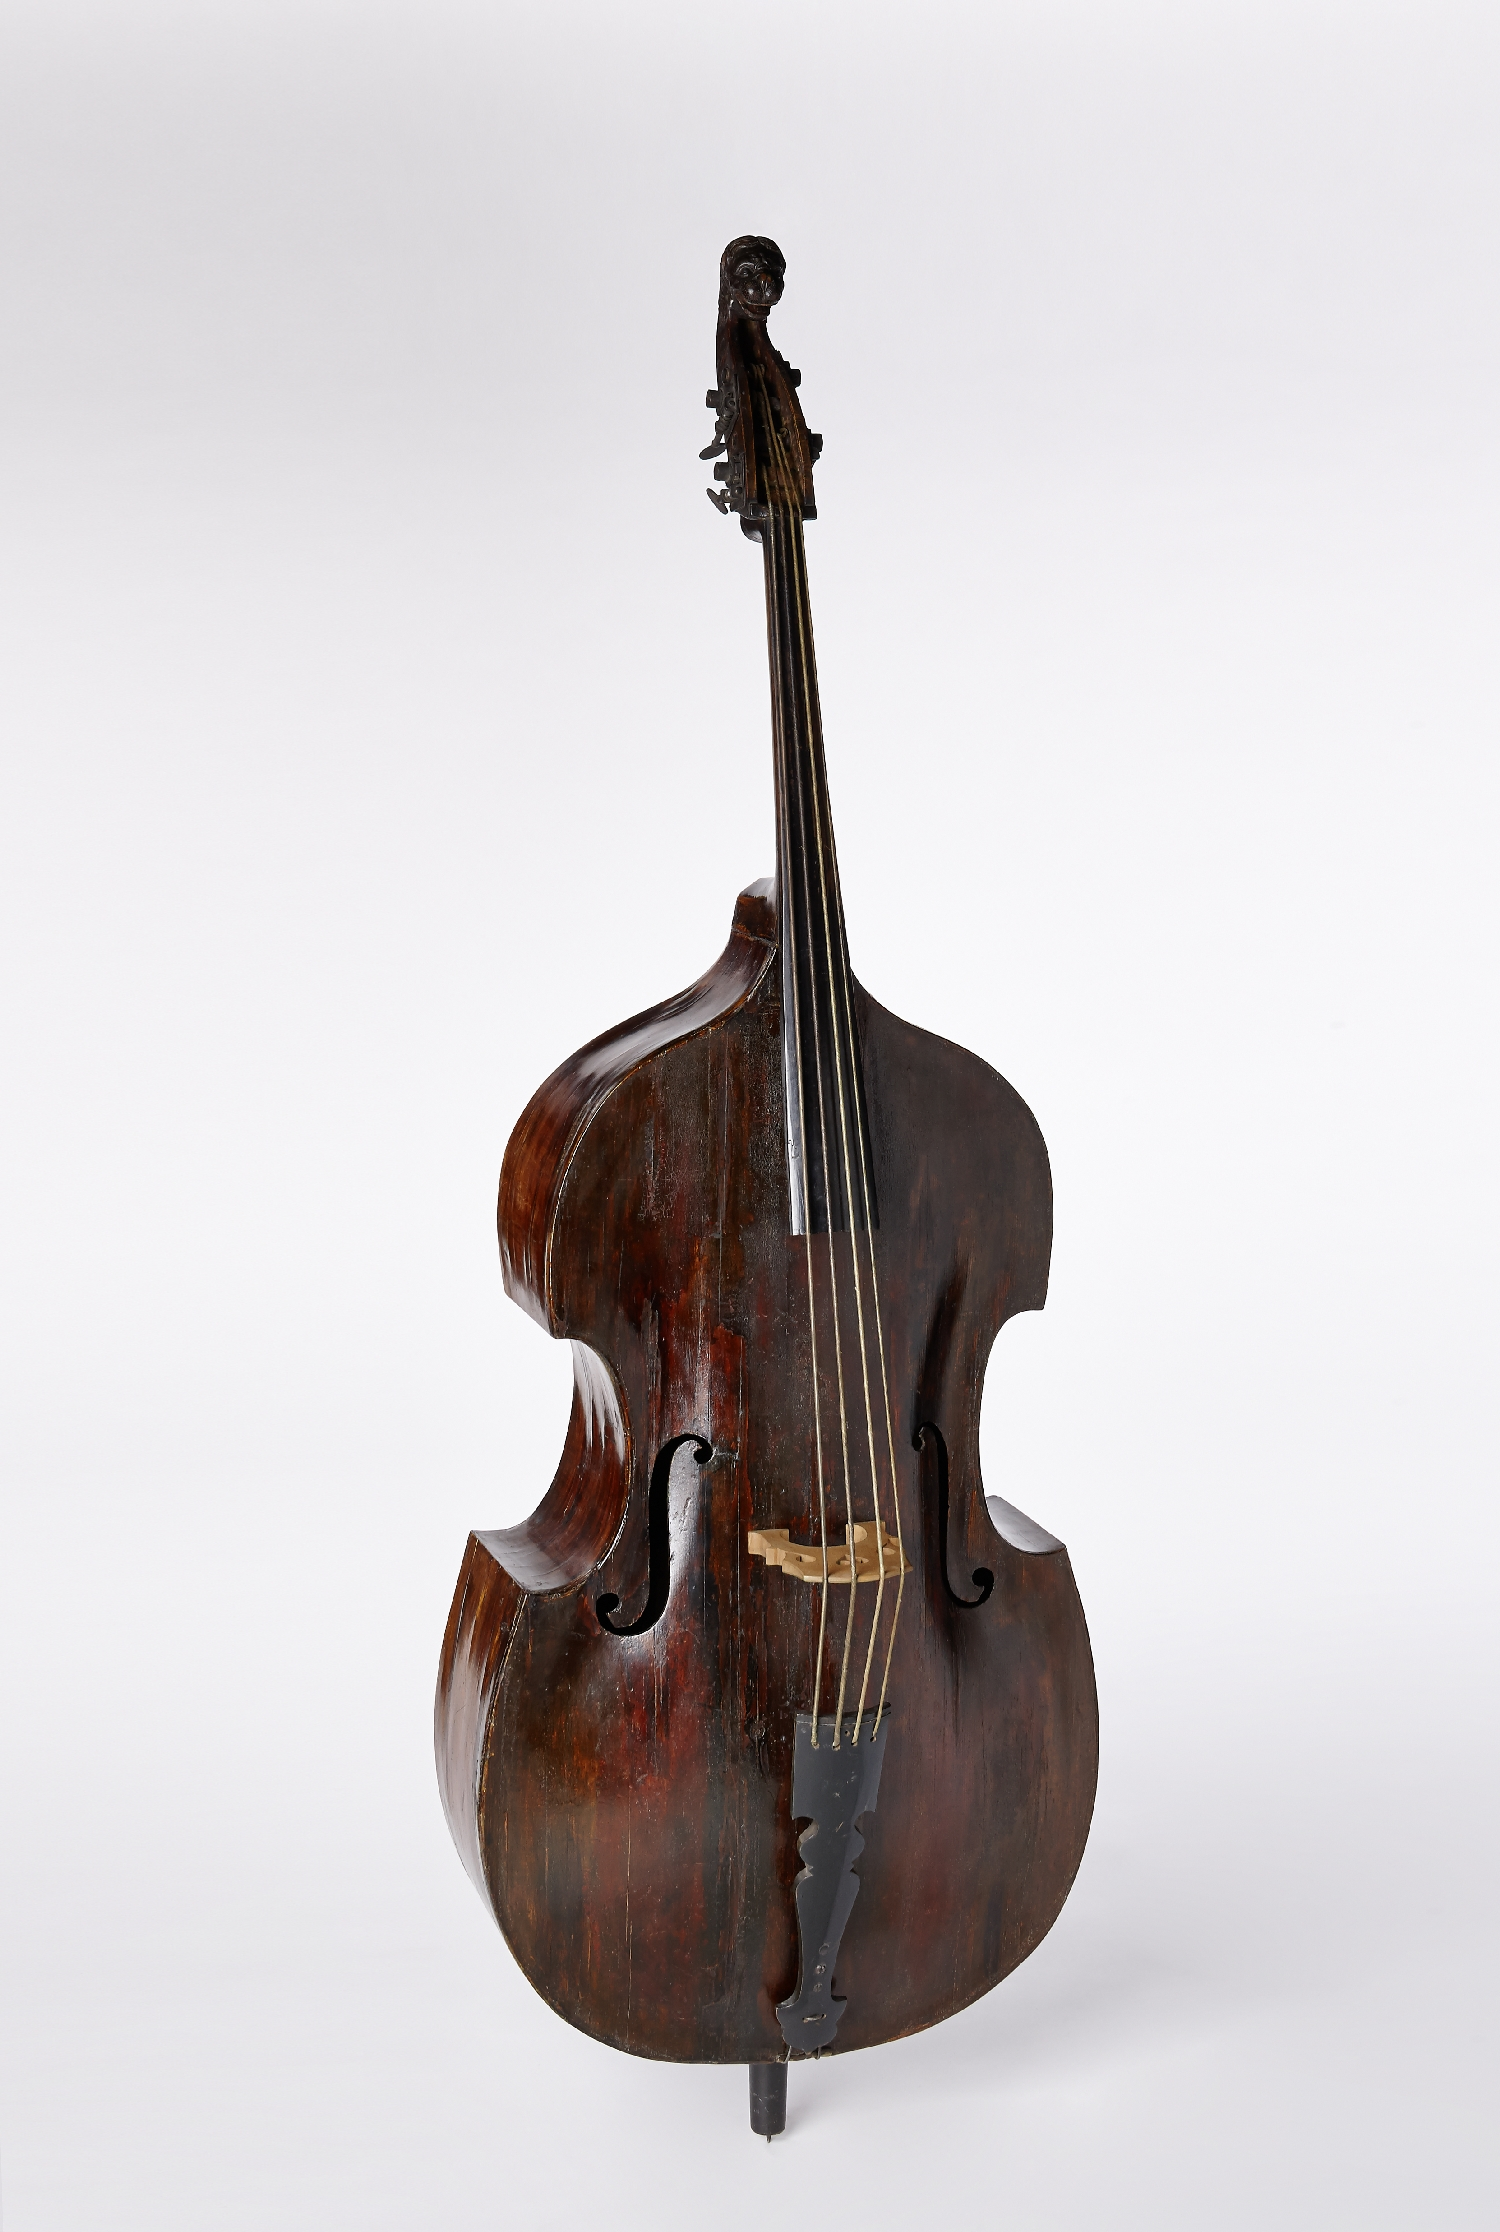 Double bass with the coat of arms of Prince Archbishop Franz Anton Prince of Harrach, Andreas Ferdinand Mayr, Salzburg, 1722, wood (maple, fir), metal, inv. no. MI 1084